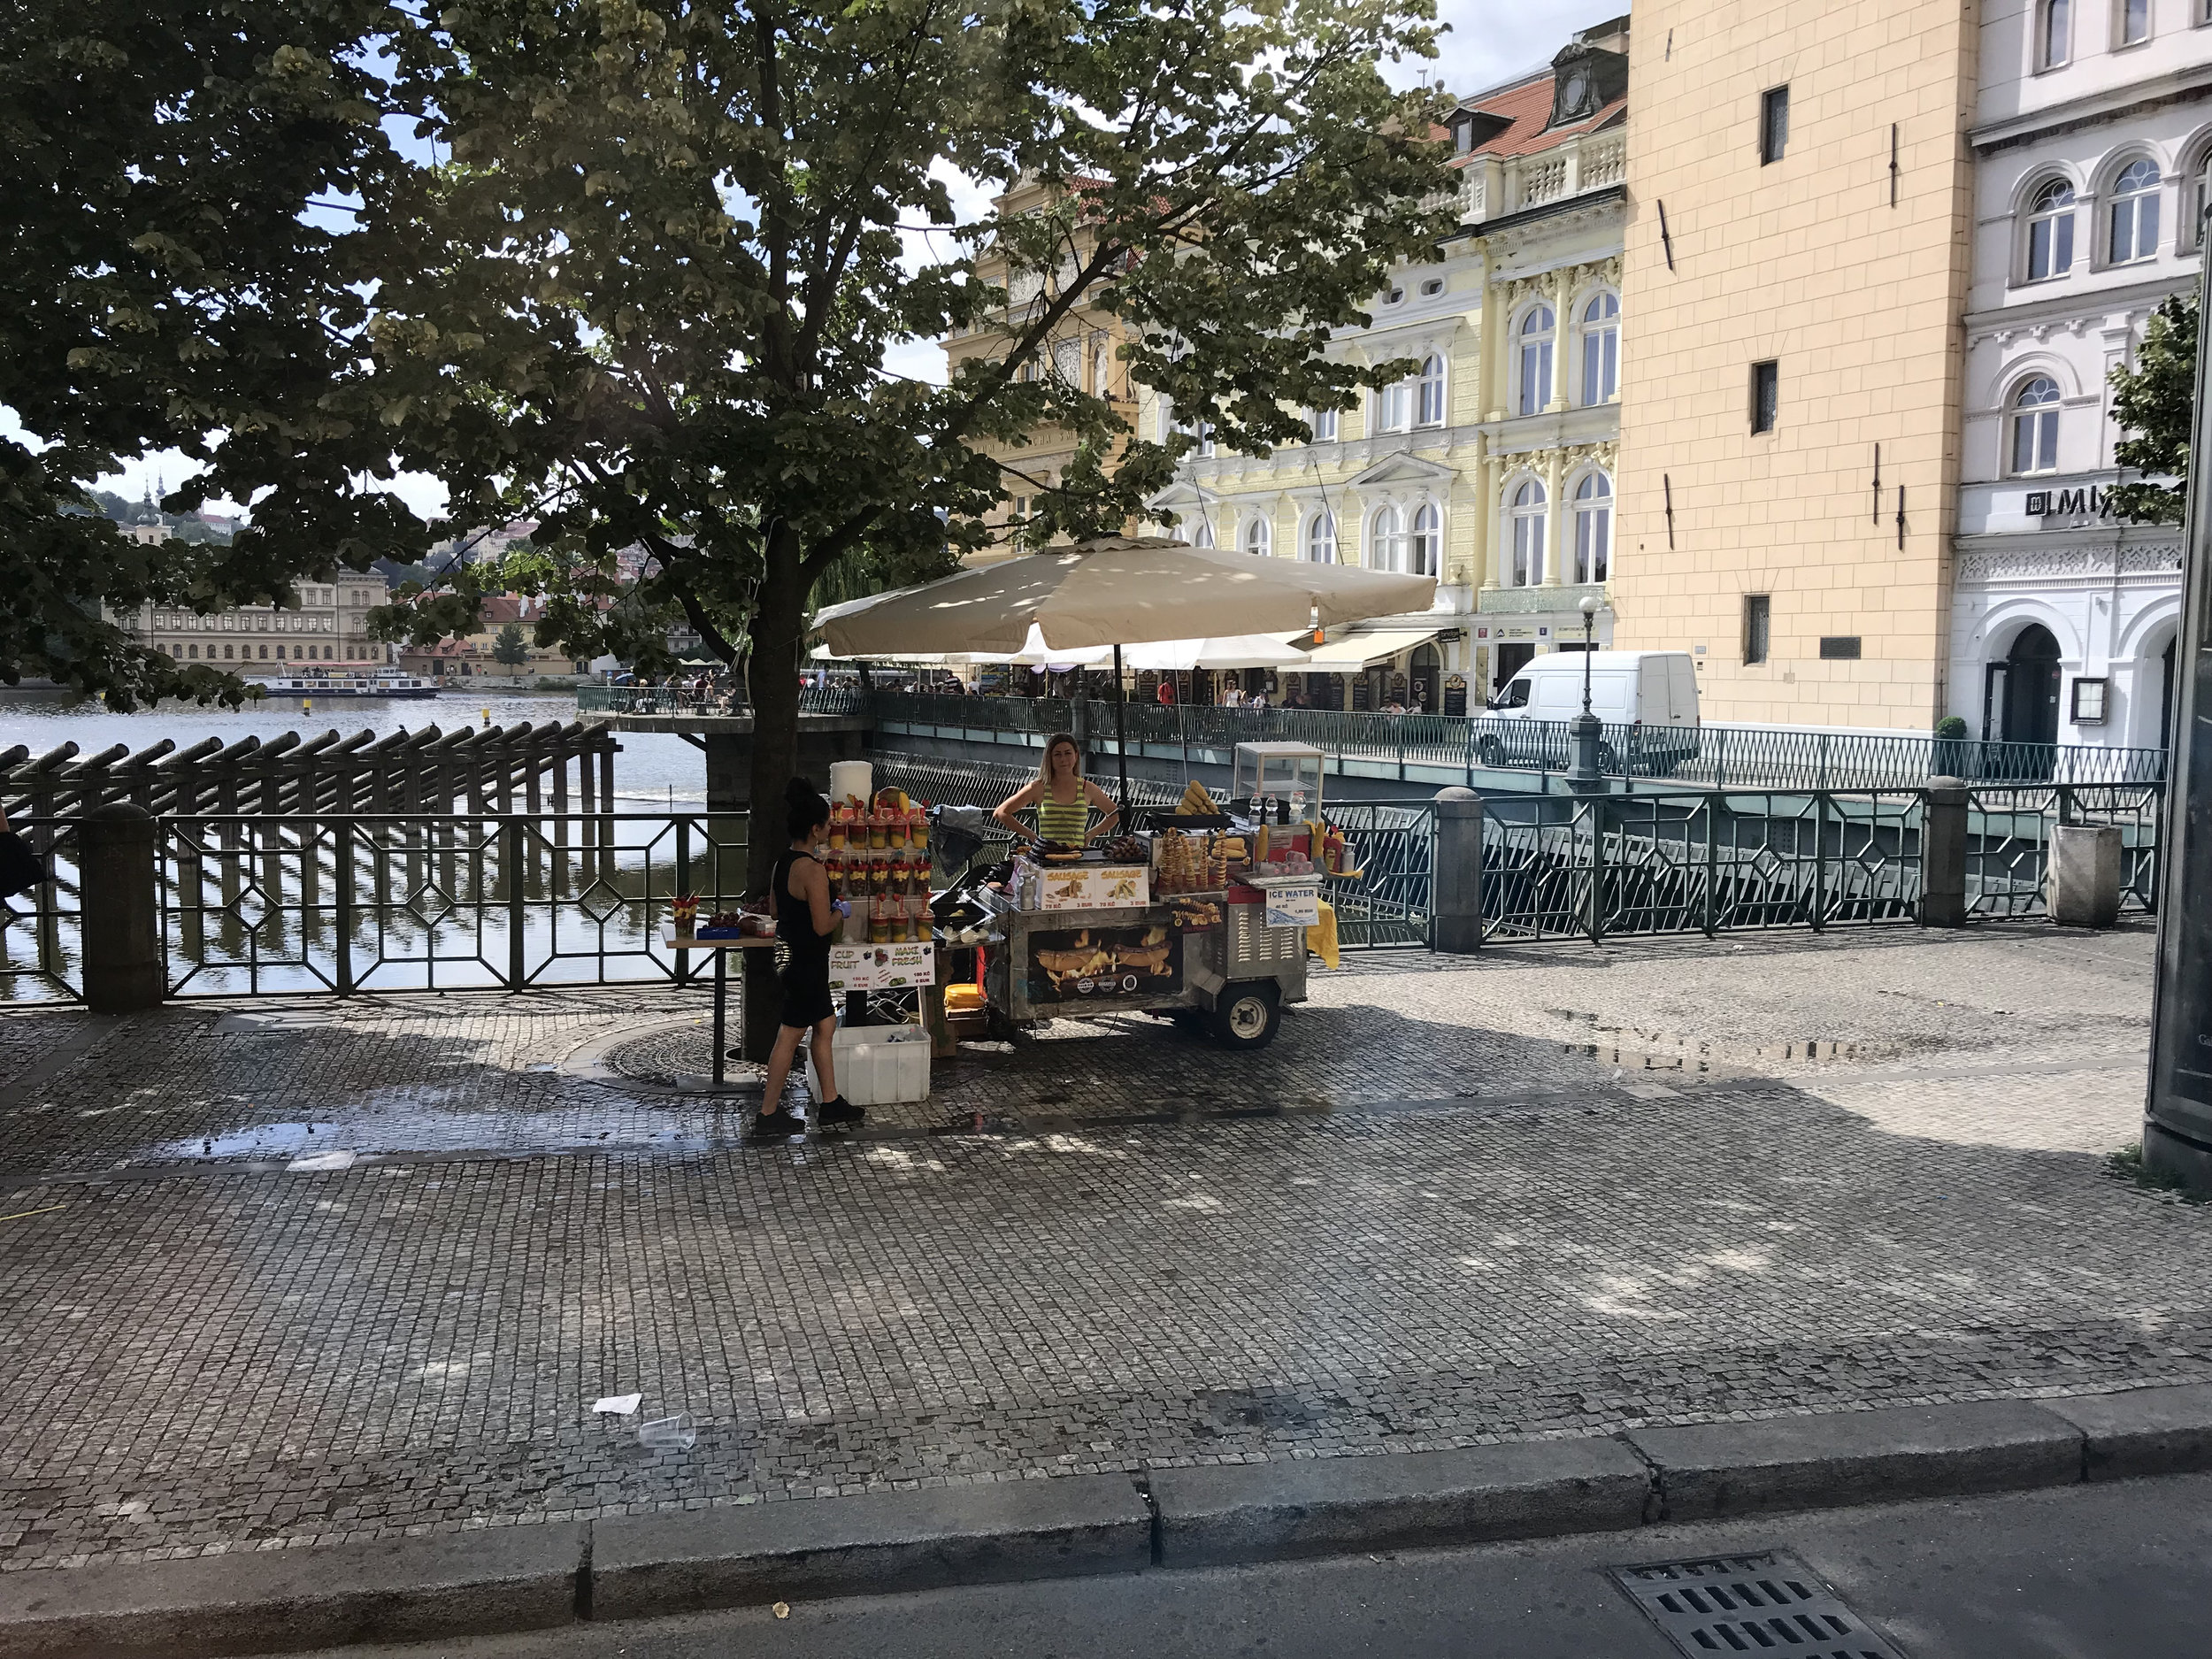 teri_Prague_TouringOldTown_spiritedtable_photo08.jpg